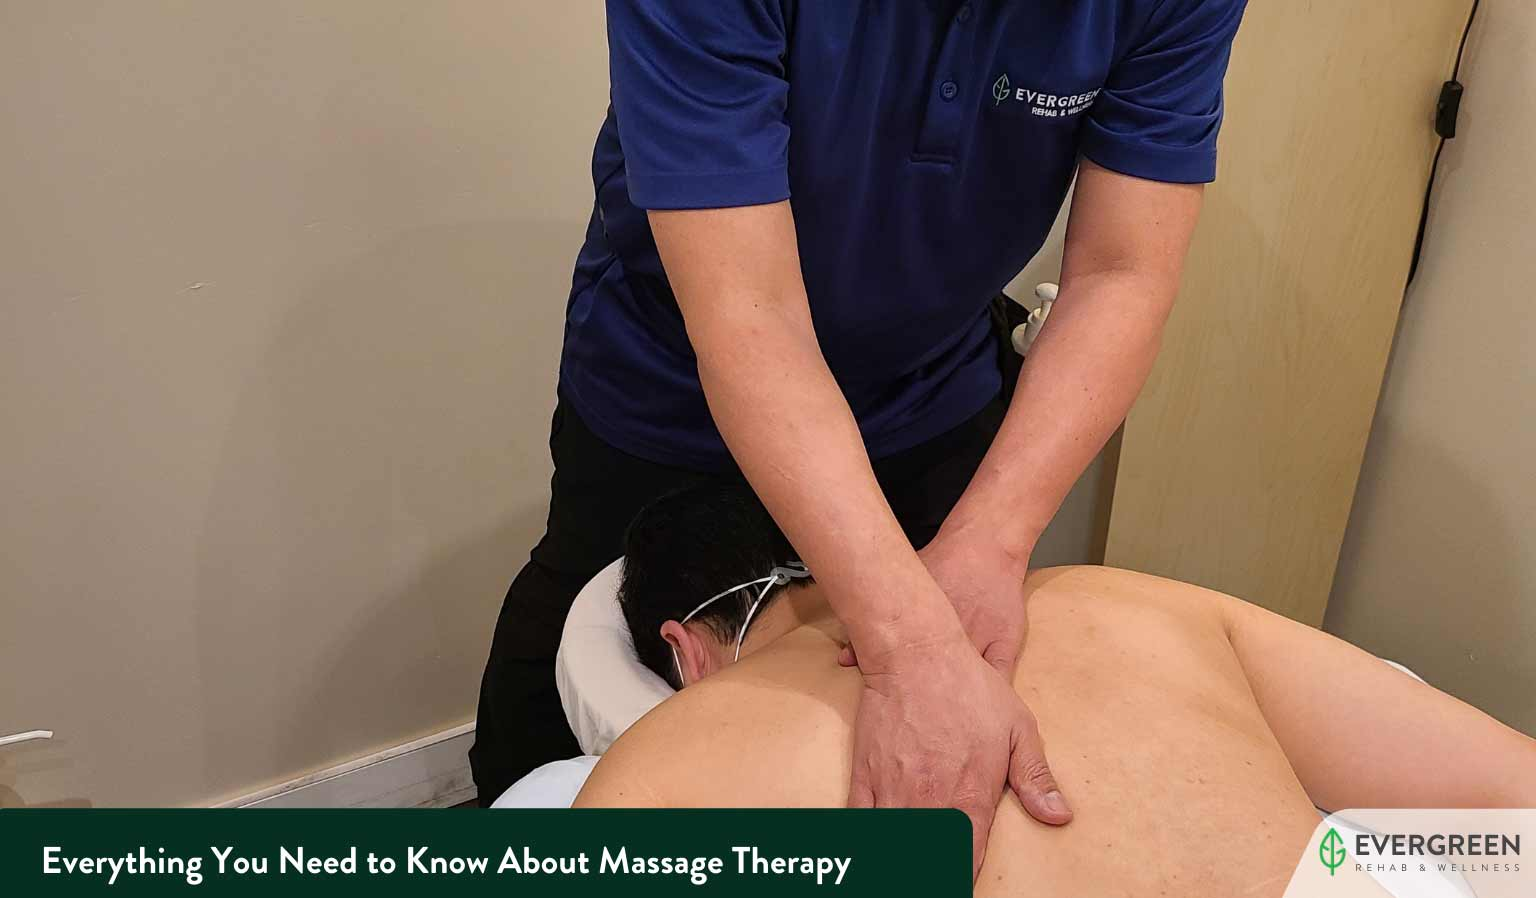 Everything You Need to Know About Massage Therapy